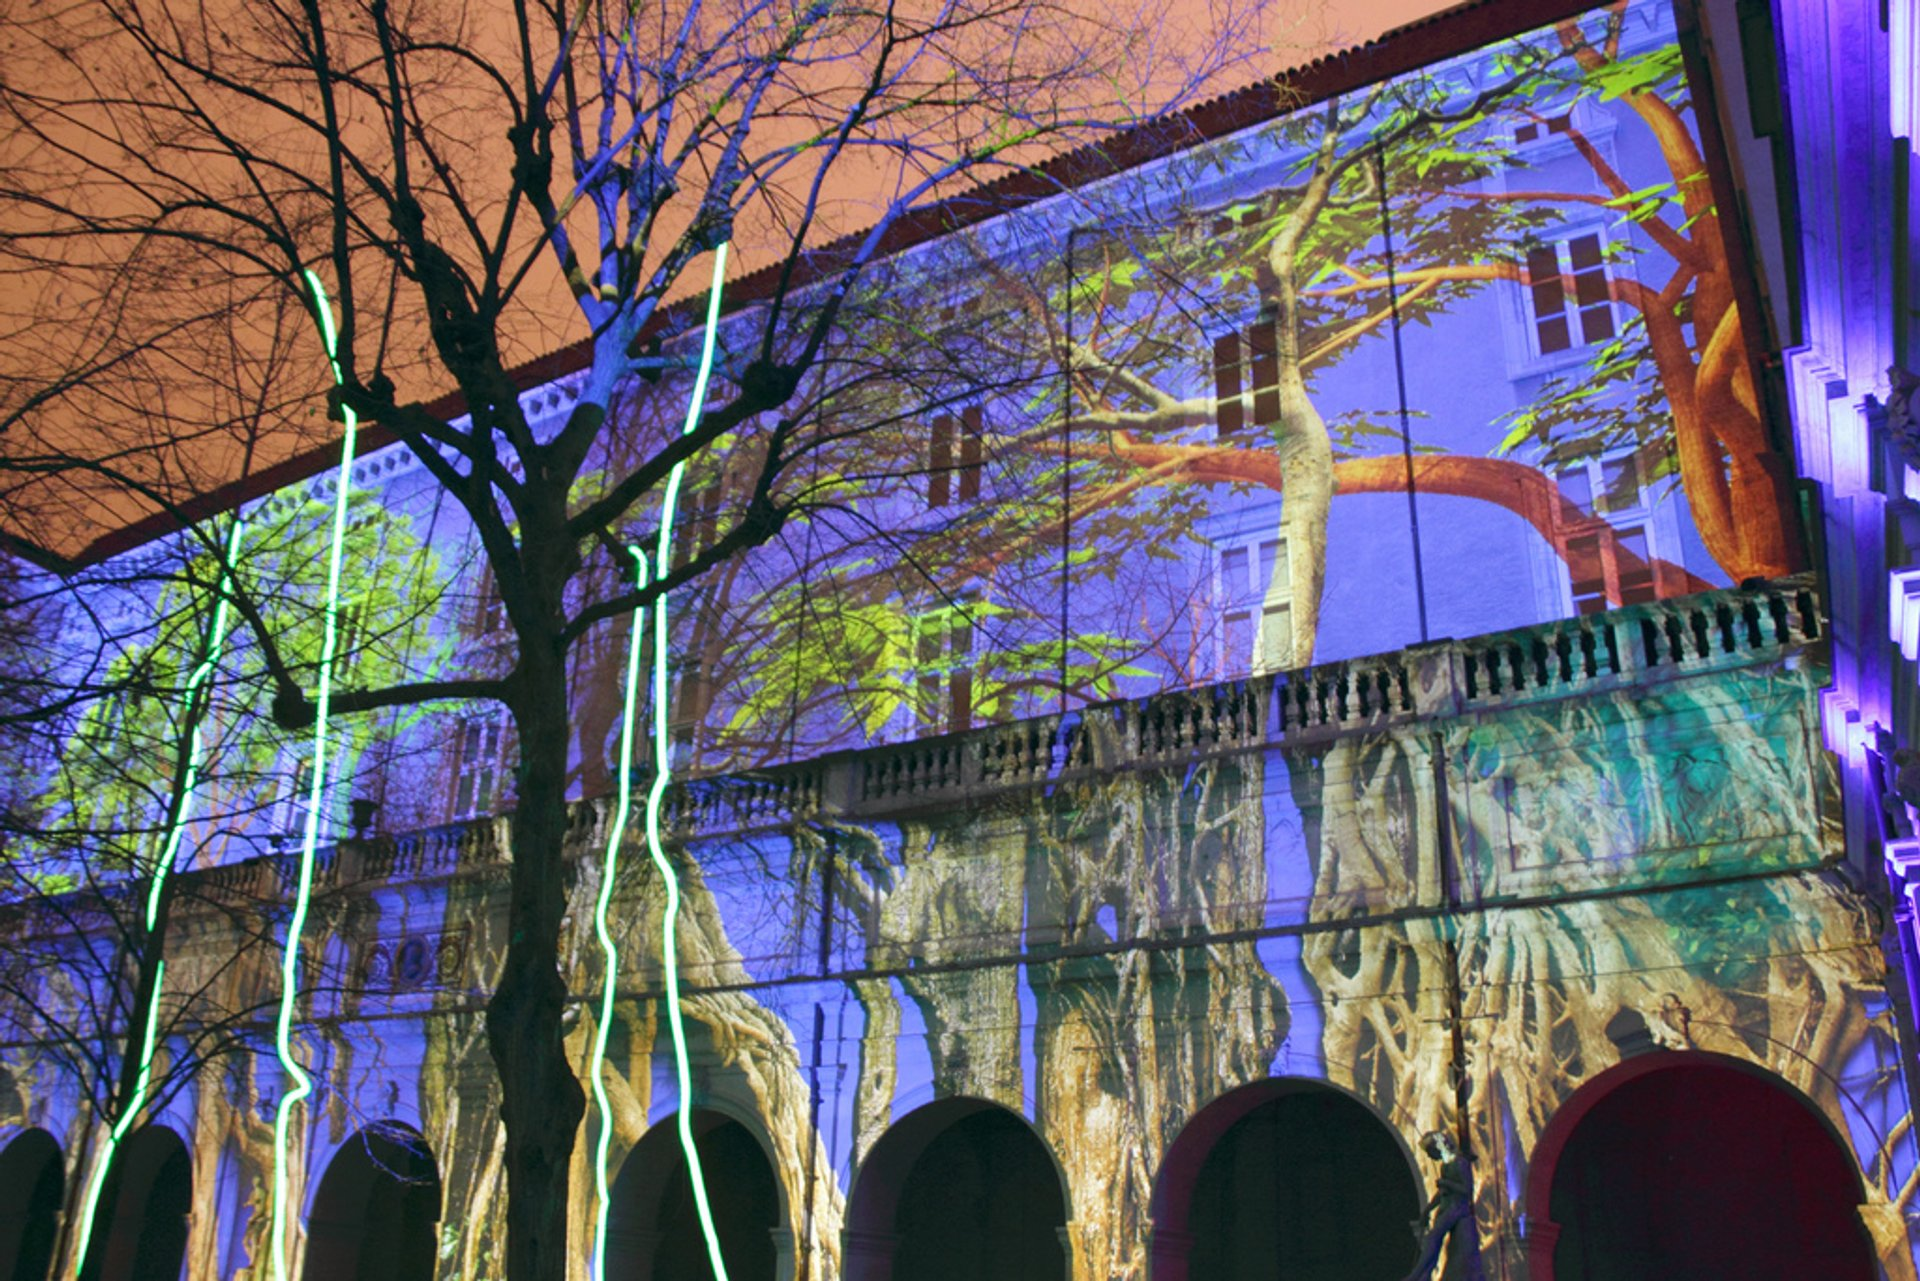 Lyon Festival of Lights (Fête des Lumières) in France - Best Season